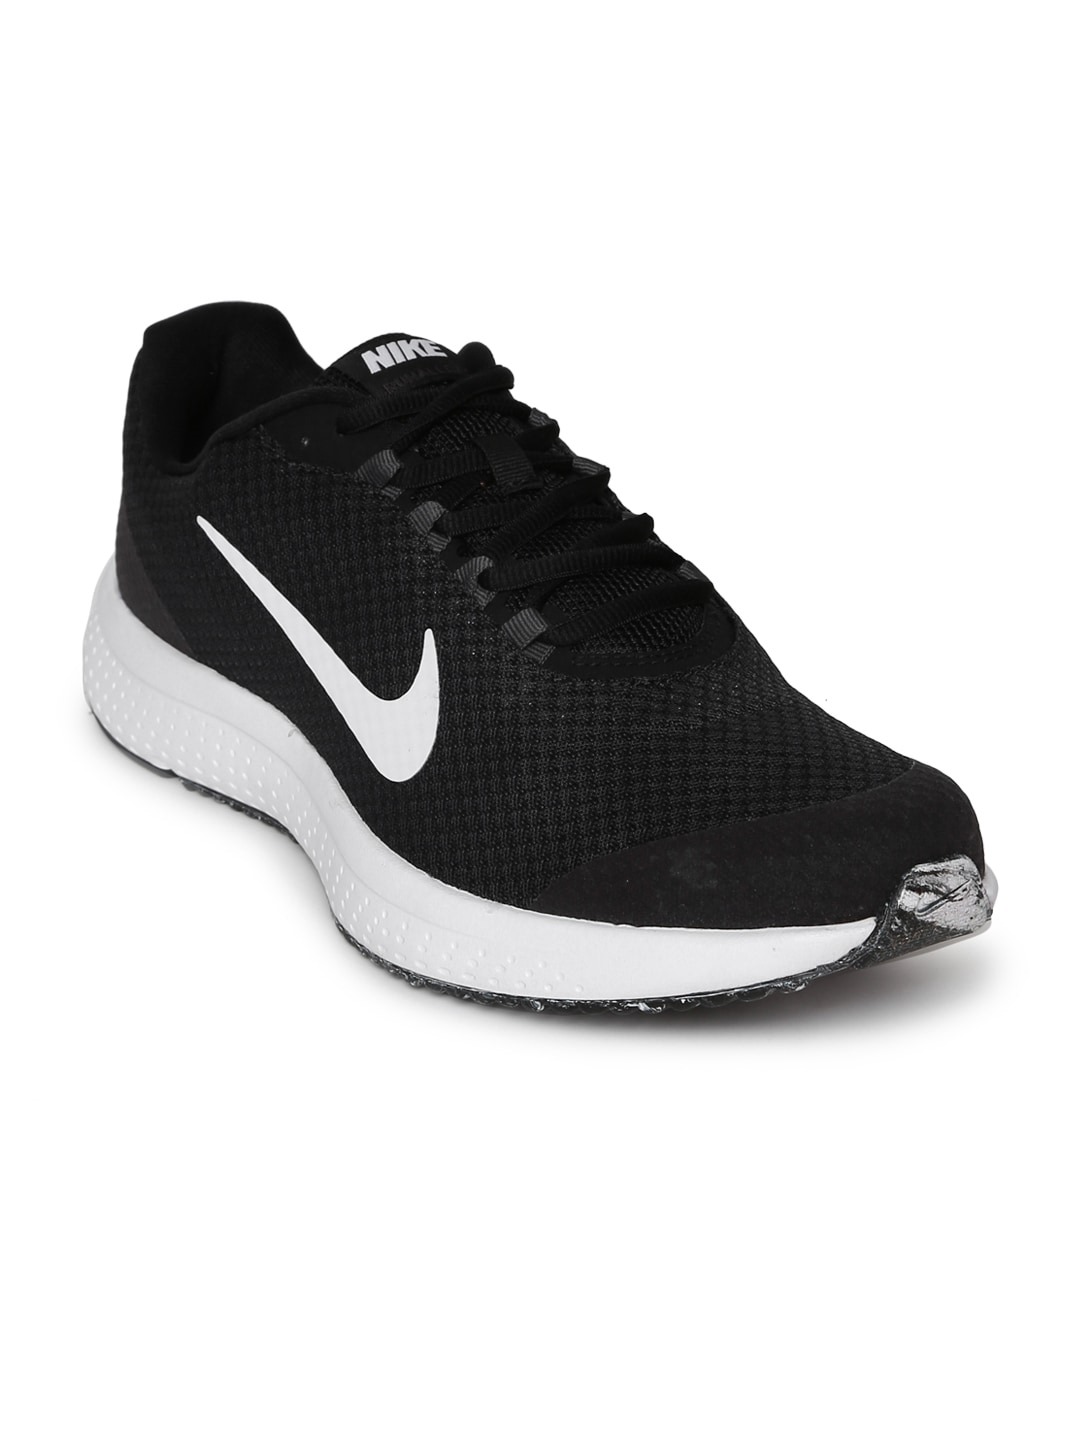 buy popular 01cc4 fe429 Nike Running Shoes For Men - Buy Nike Running Shoes For Men online in India